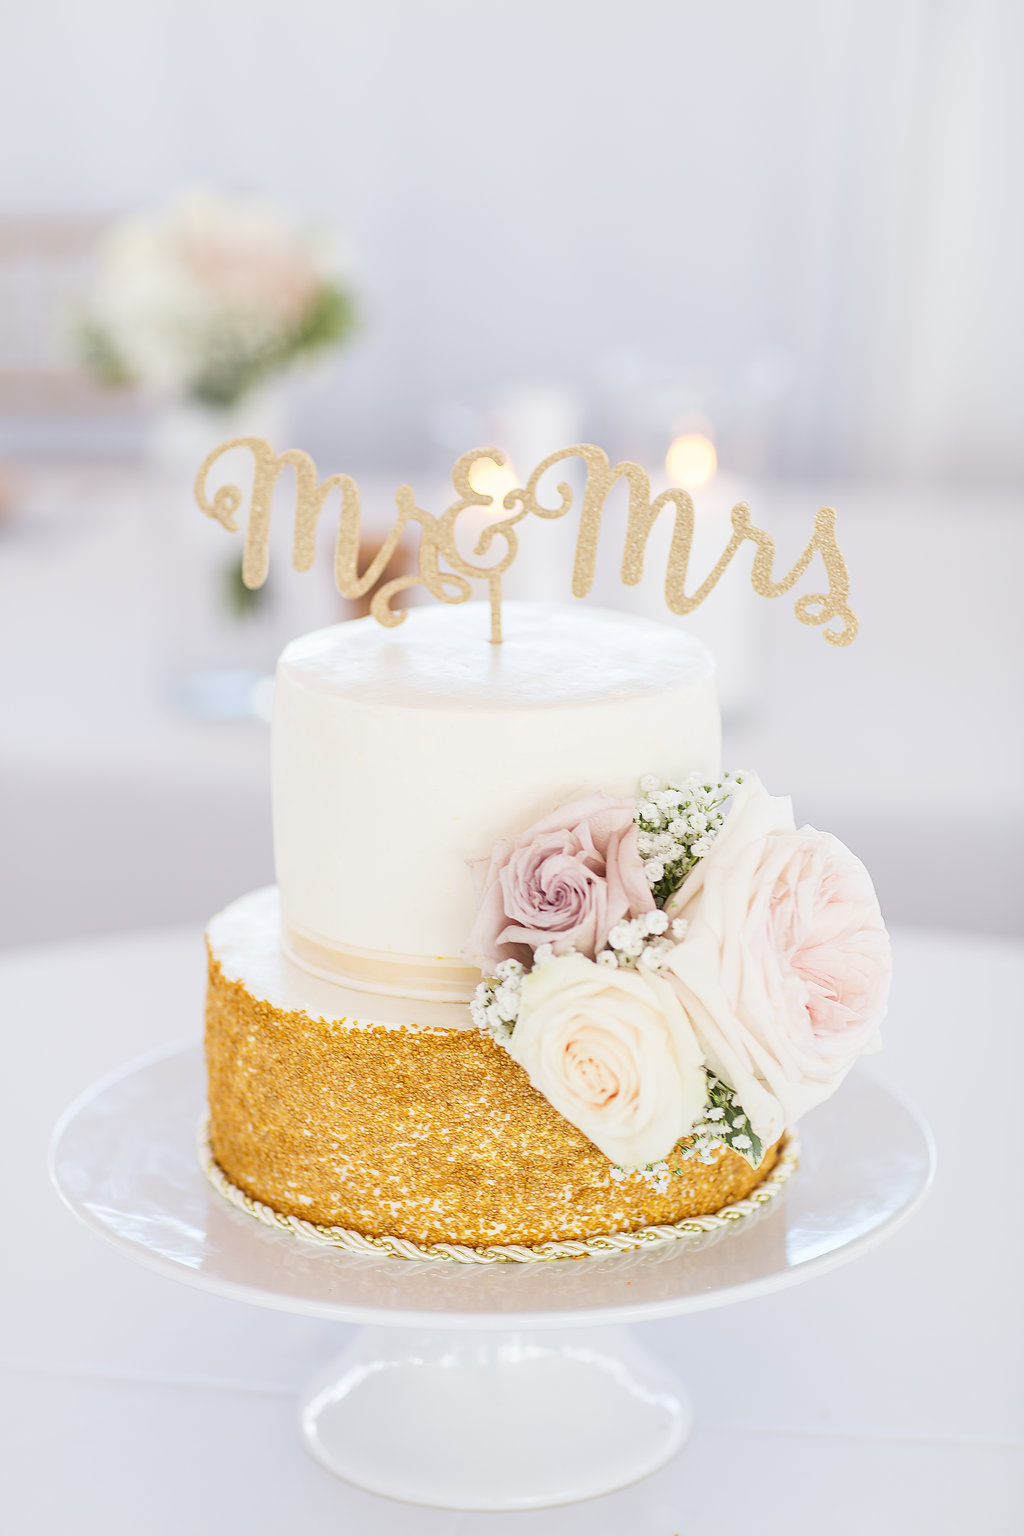 White and gold two tier wedding cake with blush roses